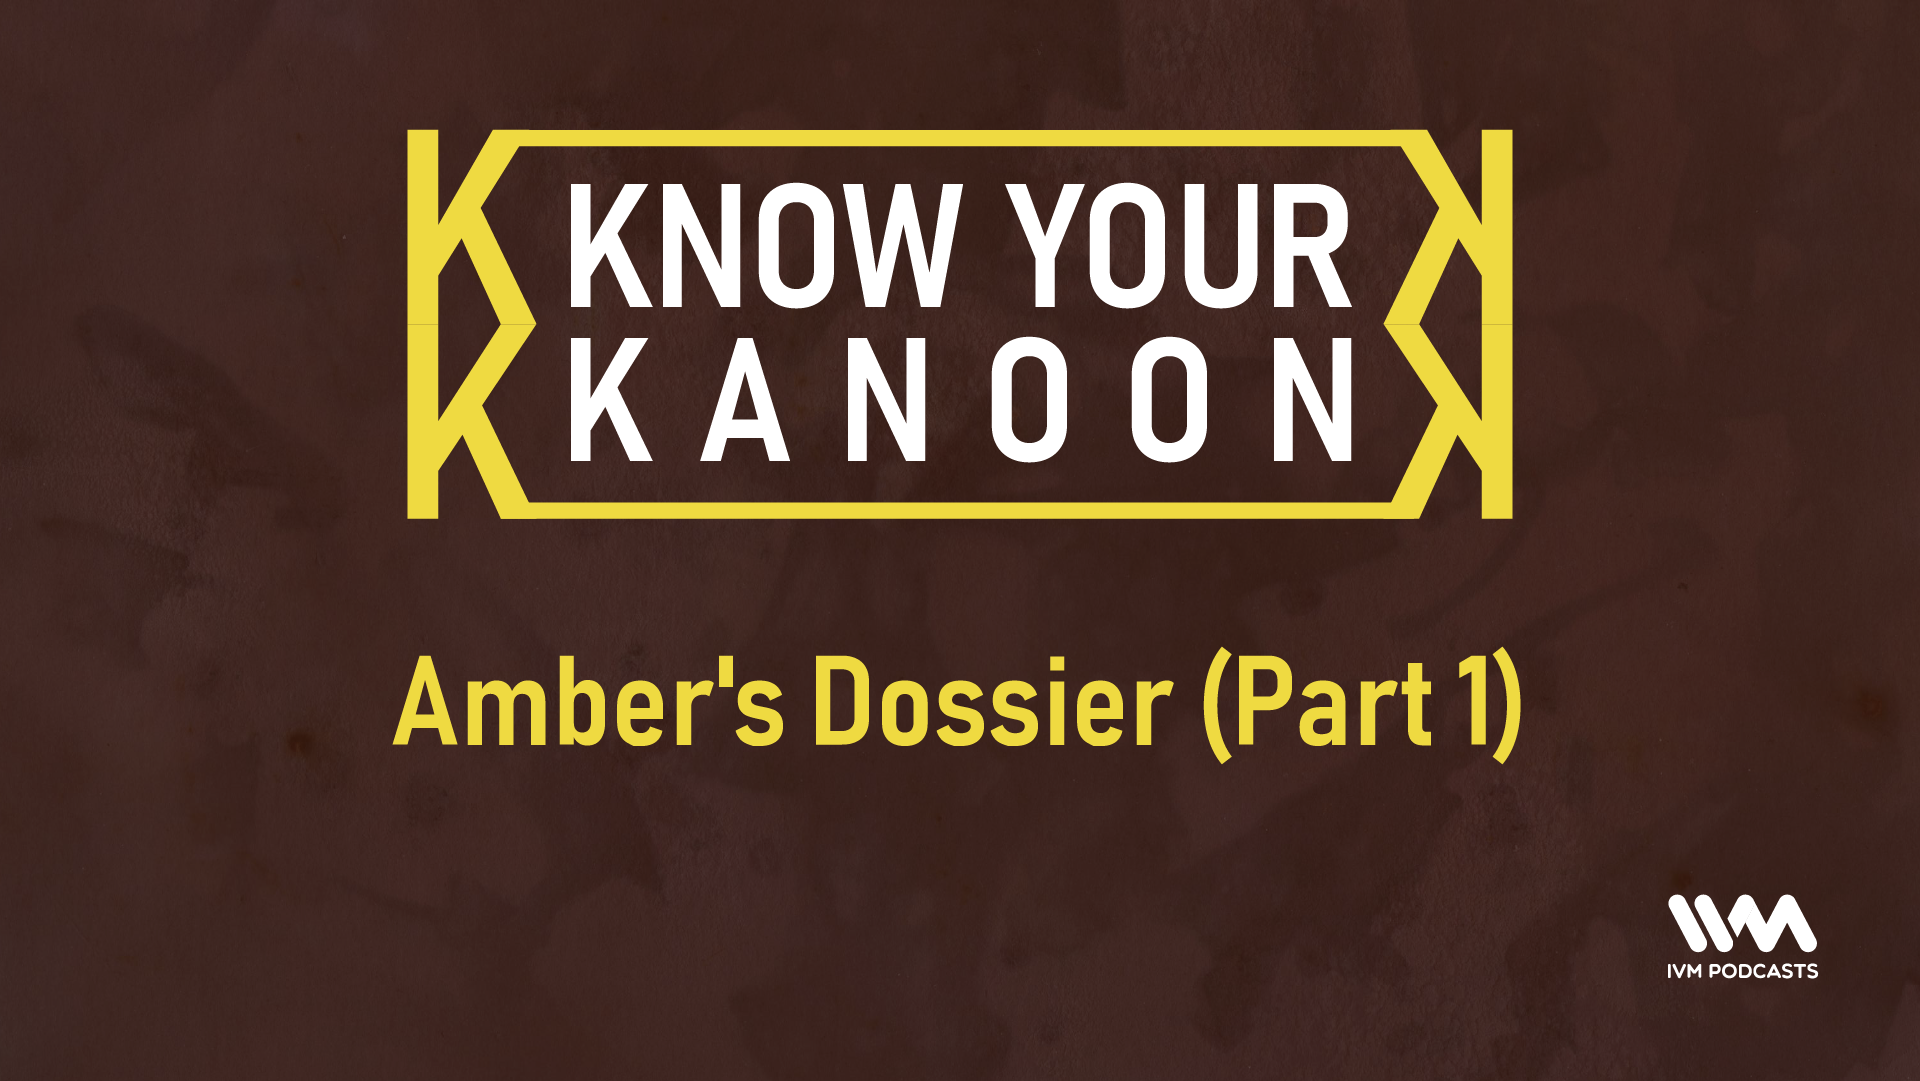 KnowYourKanoonEpisode29.png